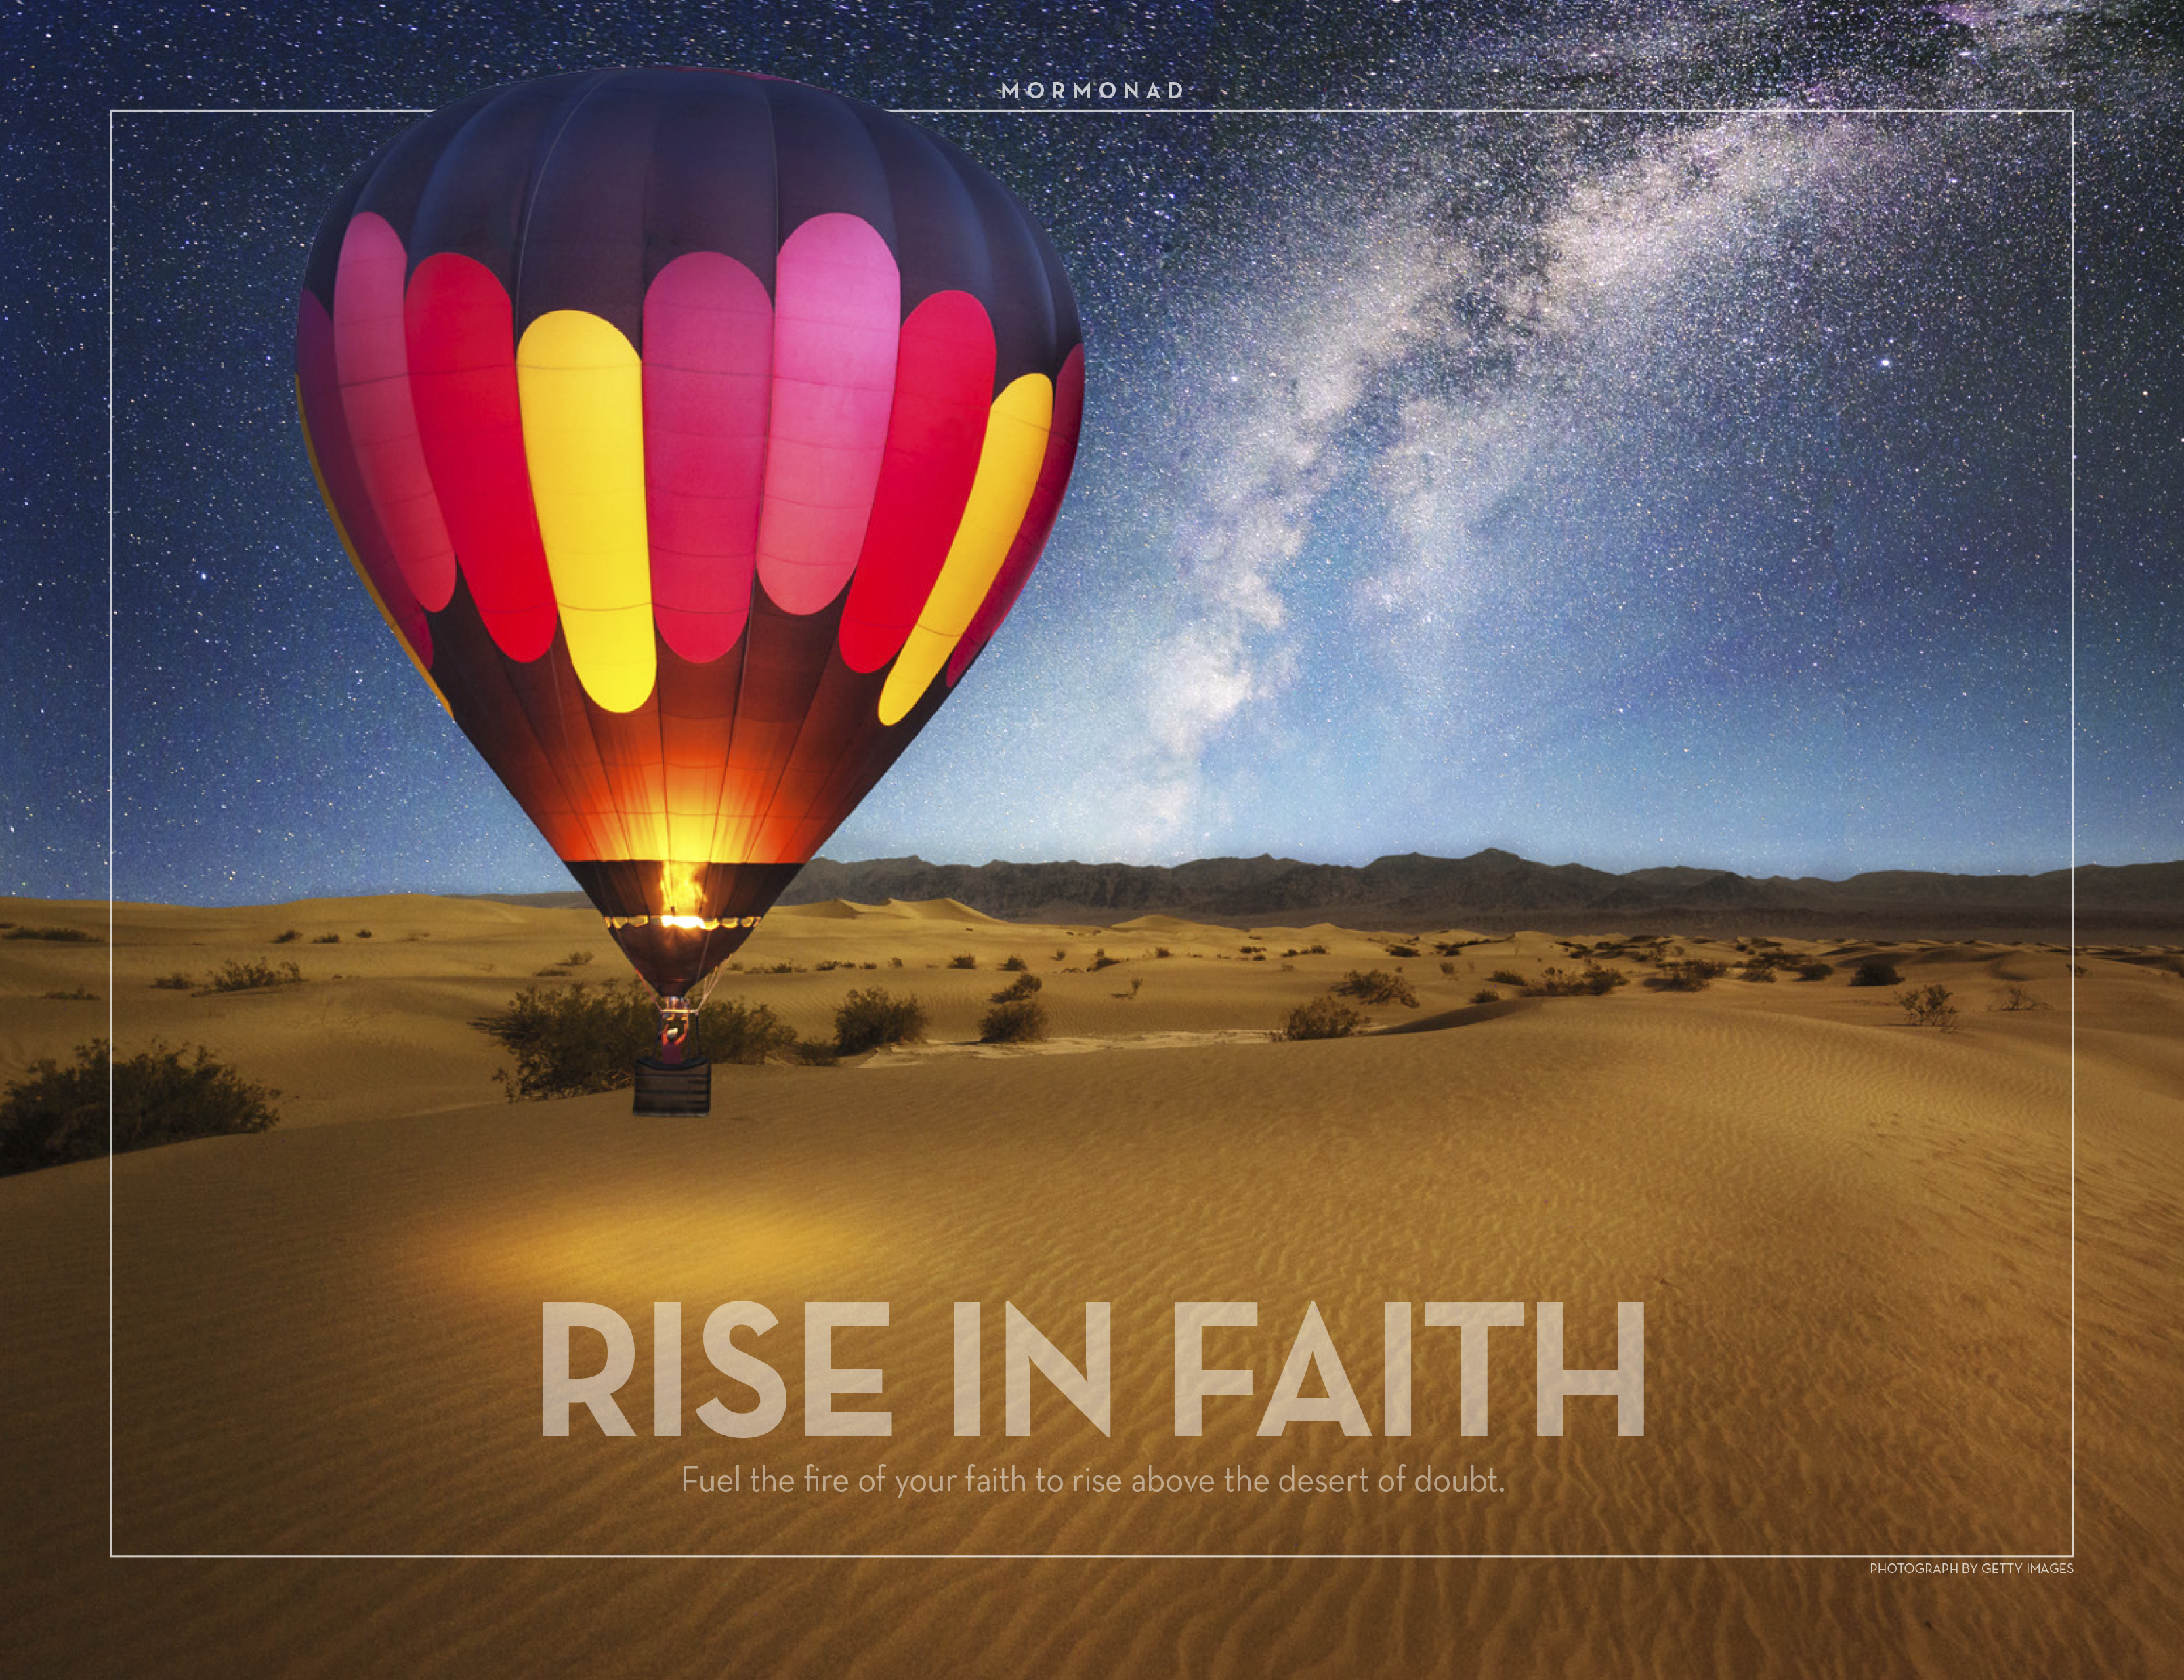 Fuel the fire of your faith to rise above the desert of doubt. © undefined ipCode 1.